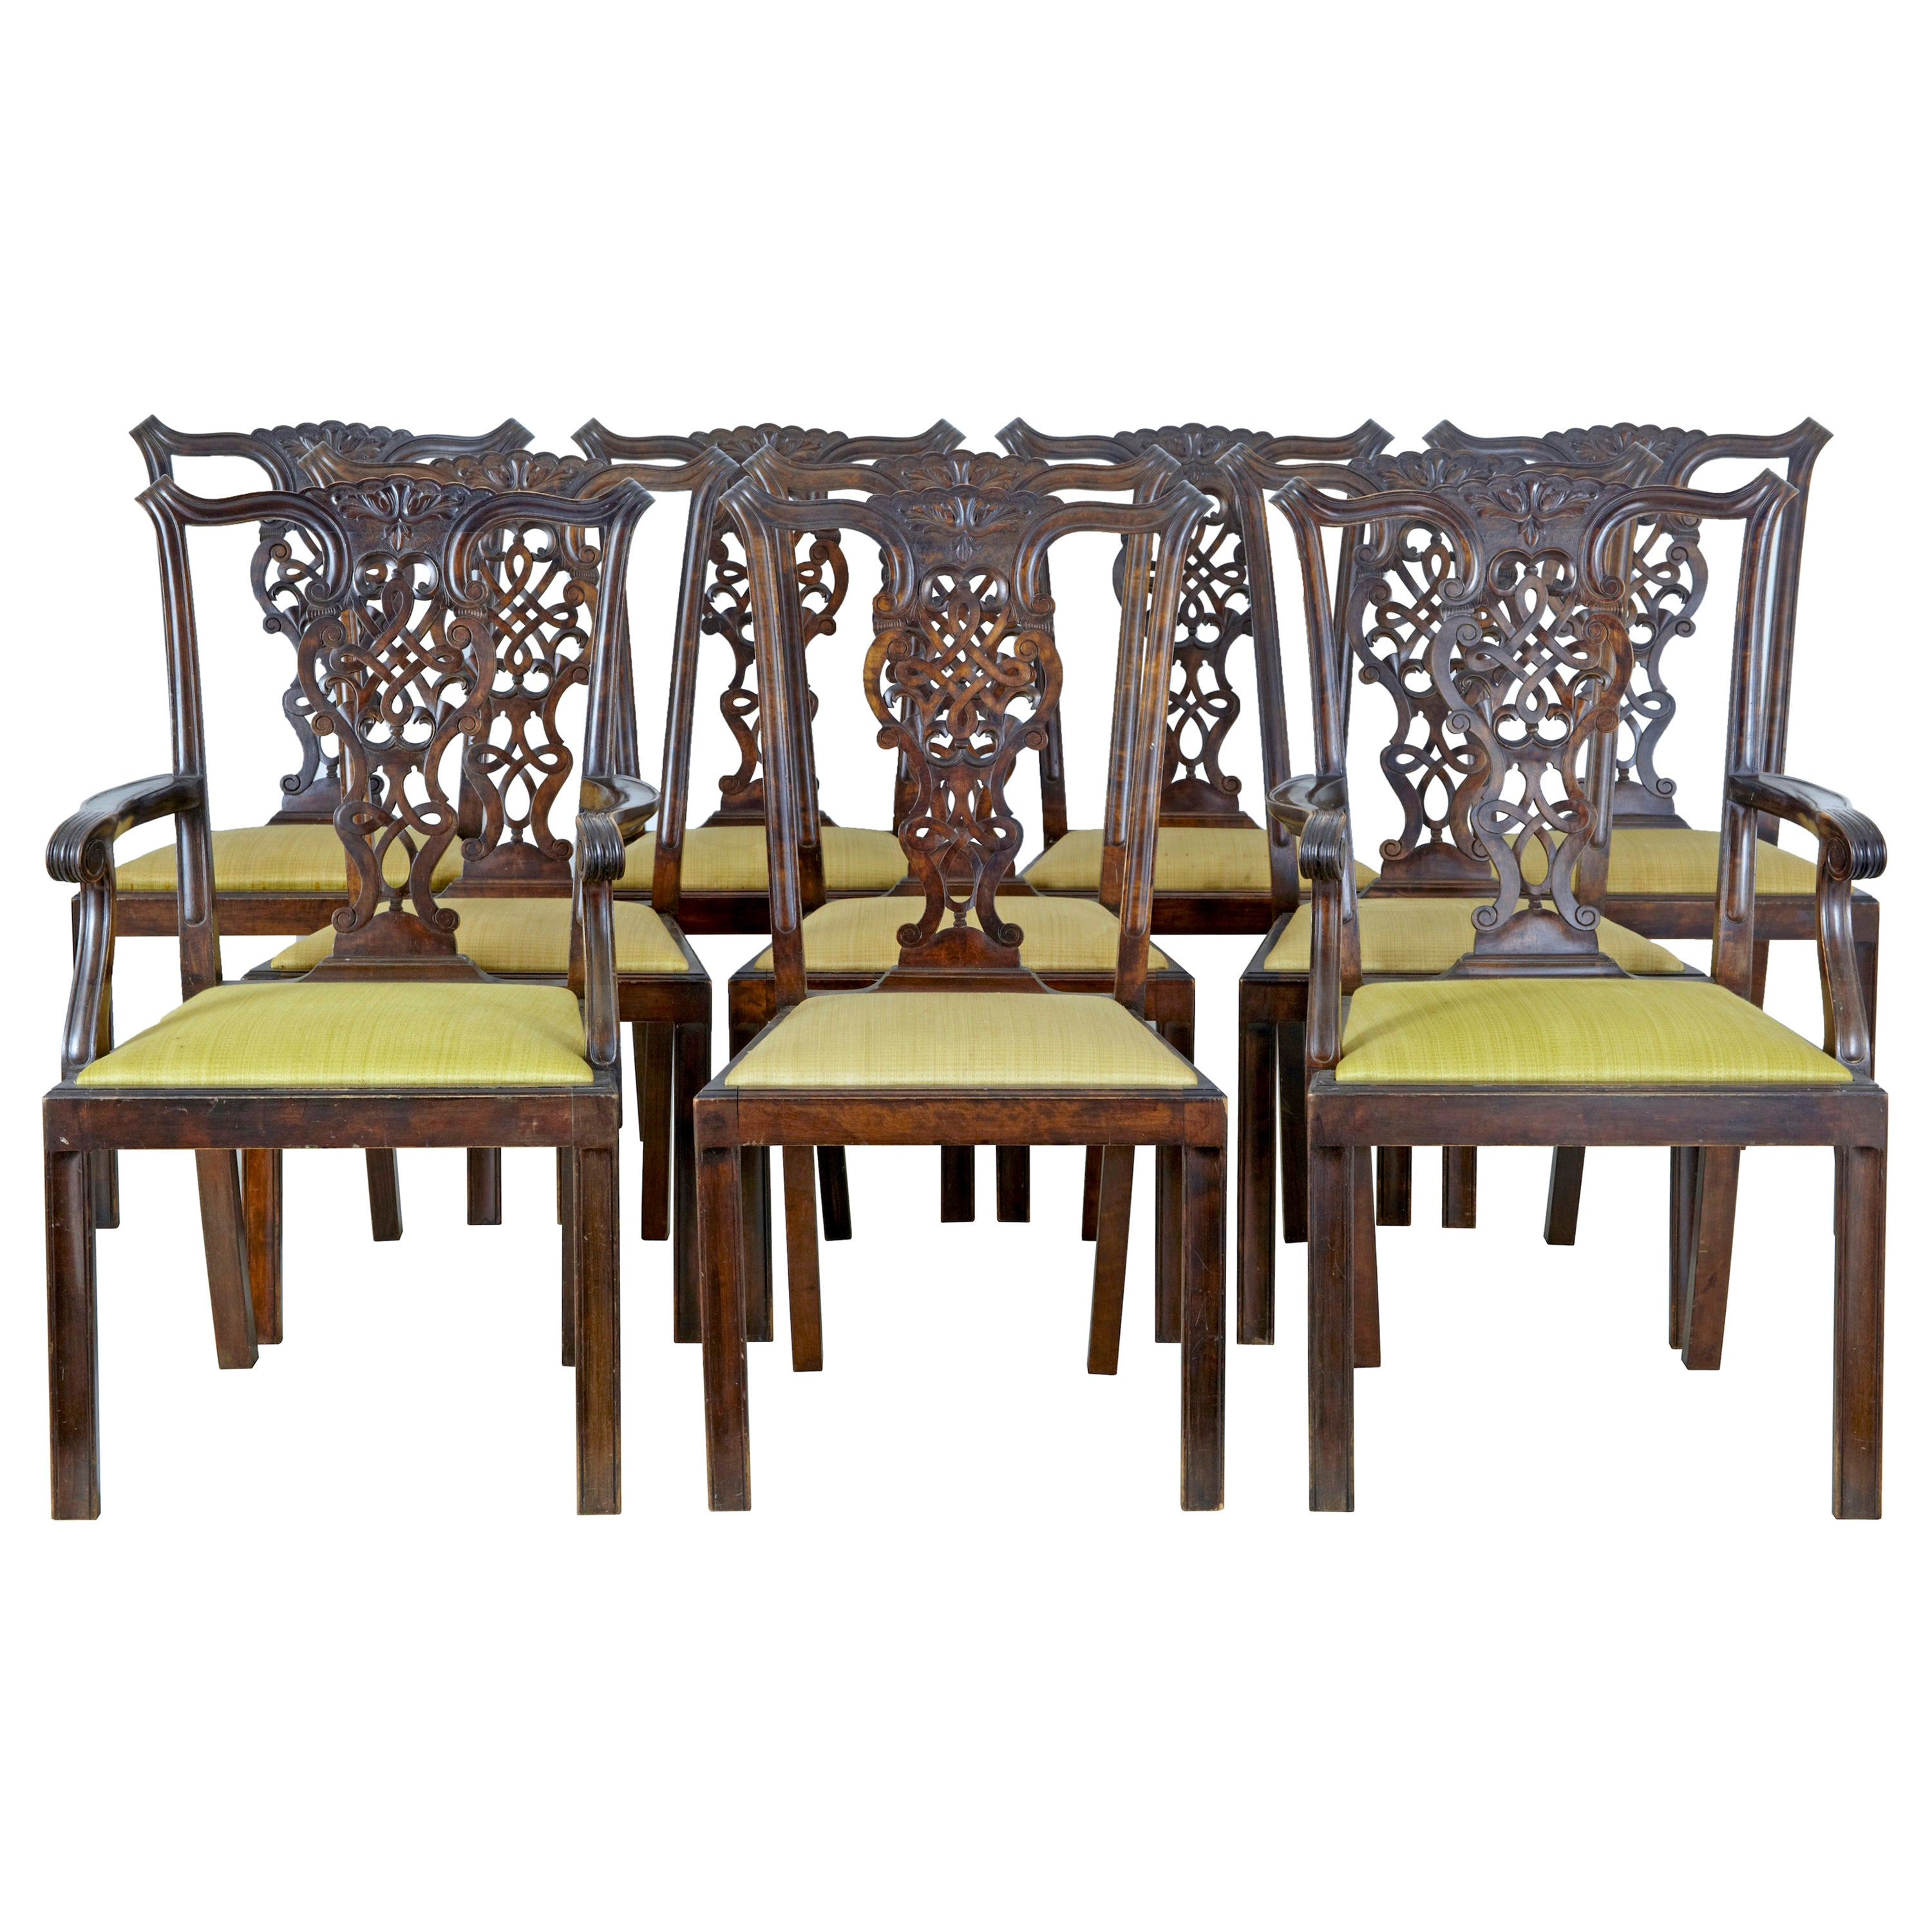 Set of 8+2 19th Century Carved Birch Chippendale Design Dining Chairs